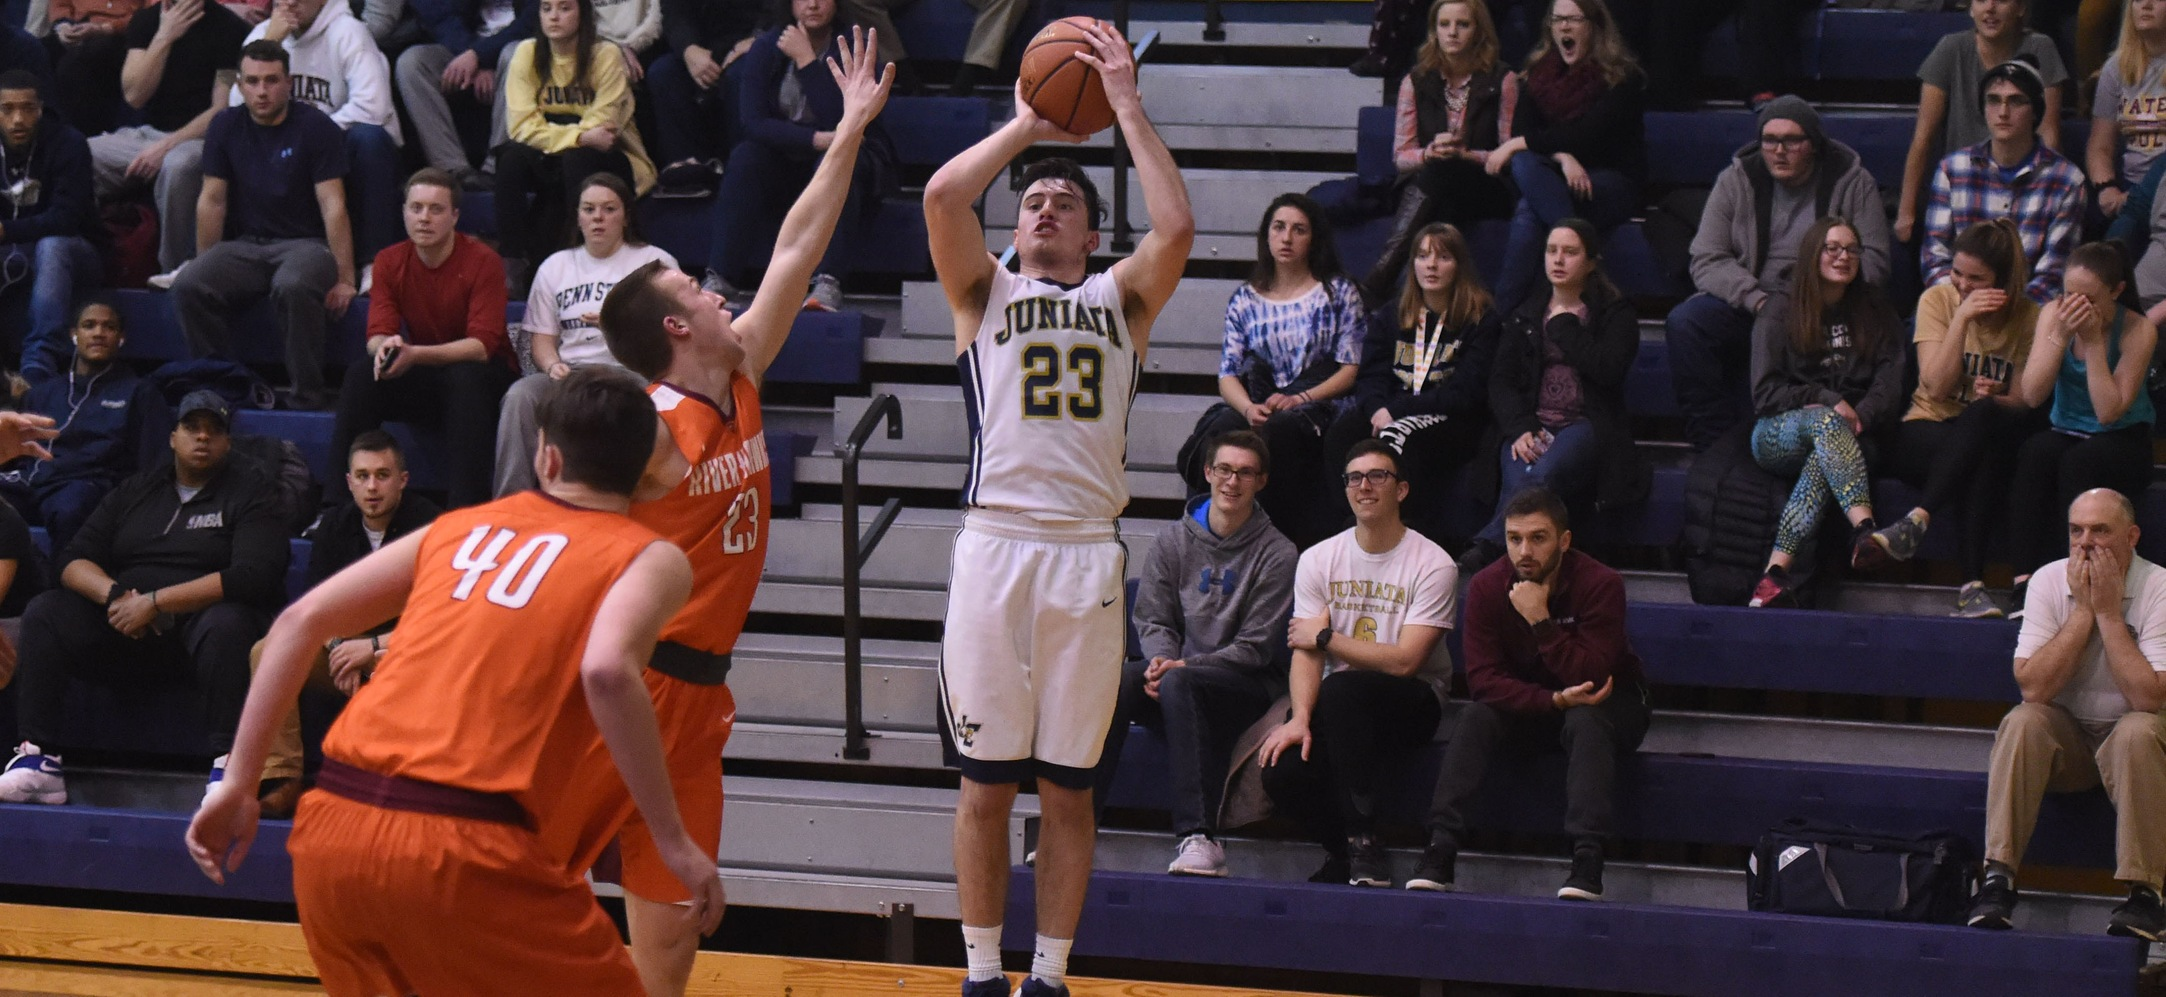 Brandon Martinazzi had his second double-double of the year as he tallied 17 points and 10 rebounds.